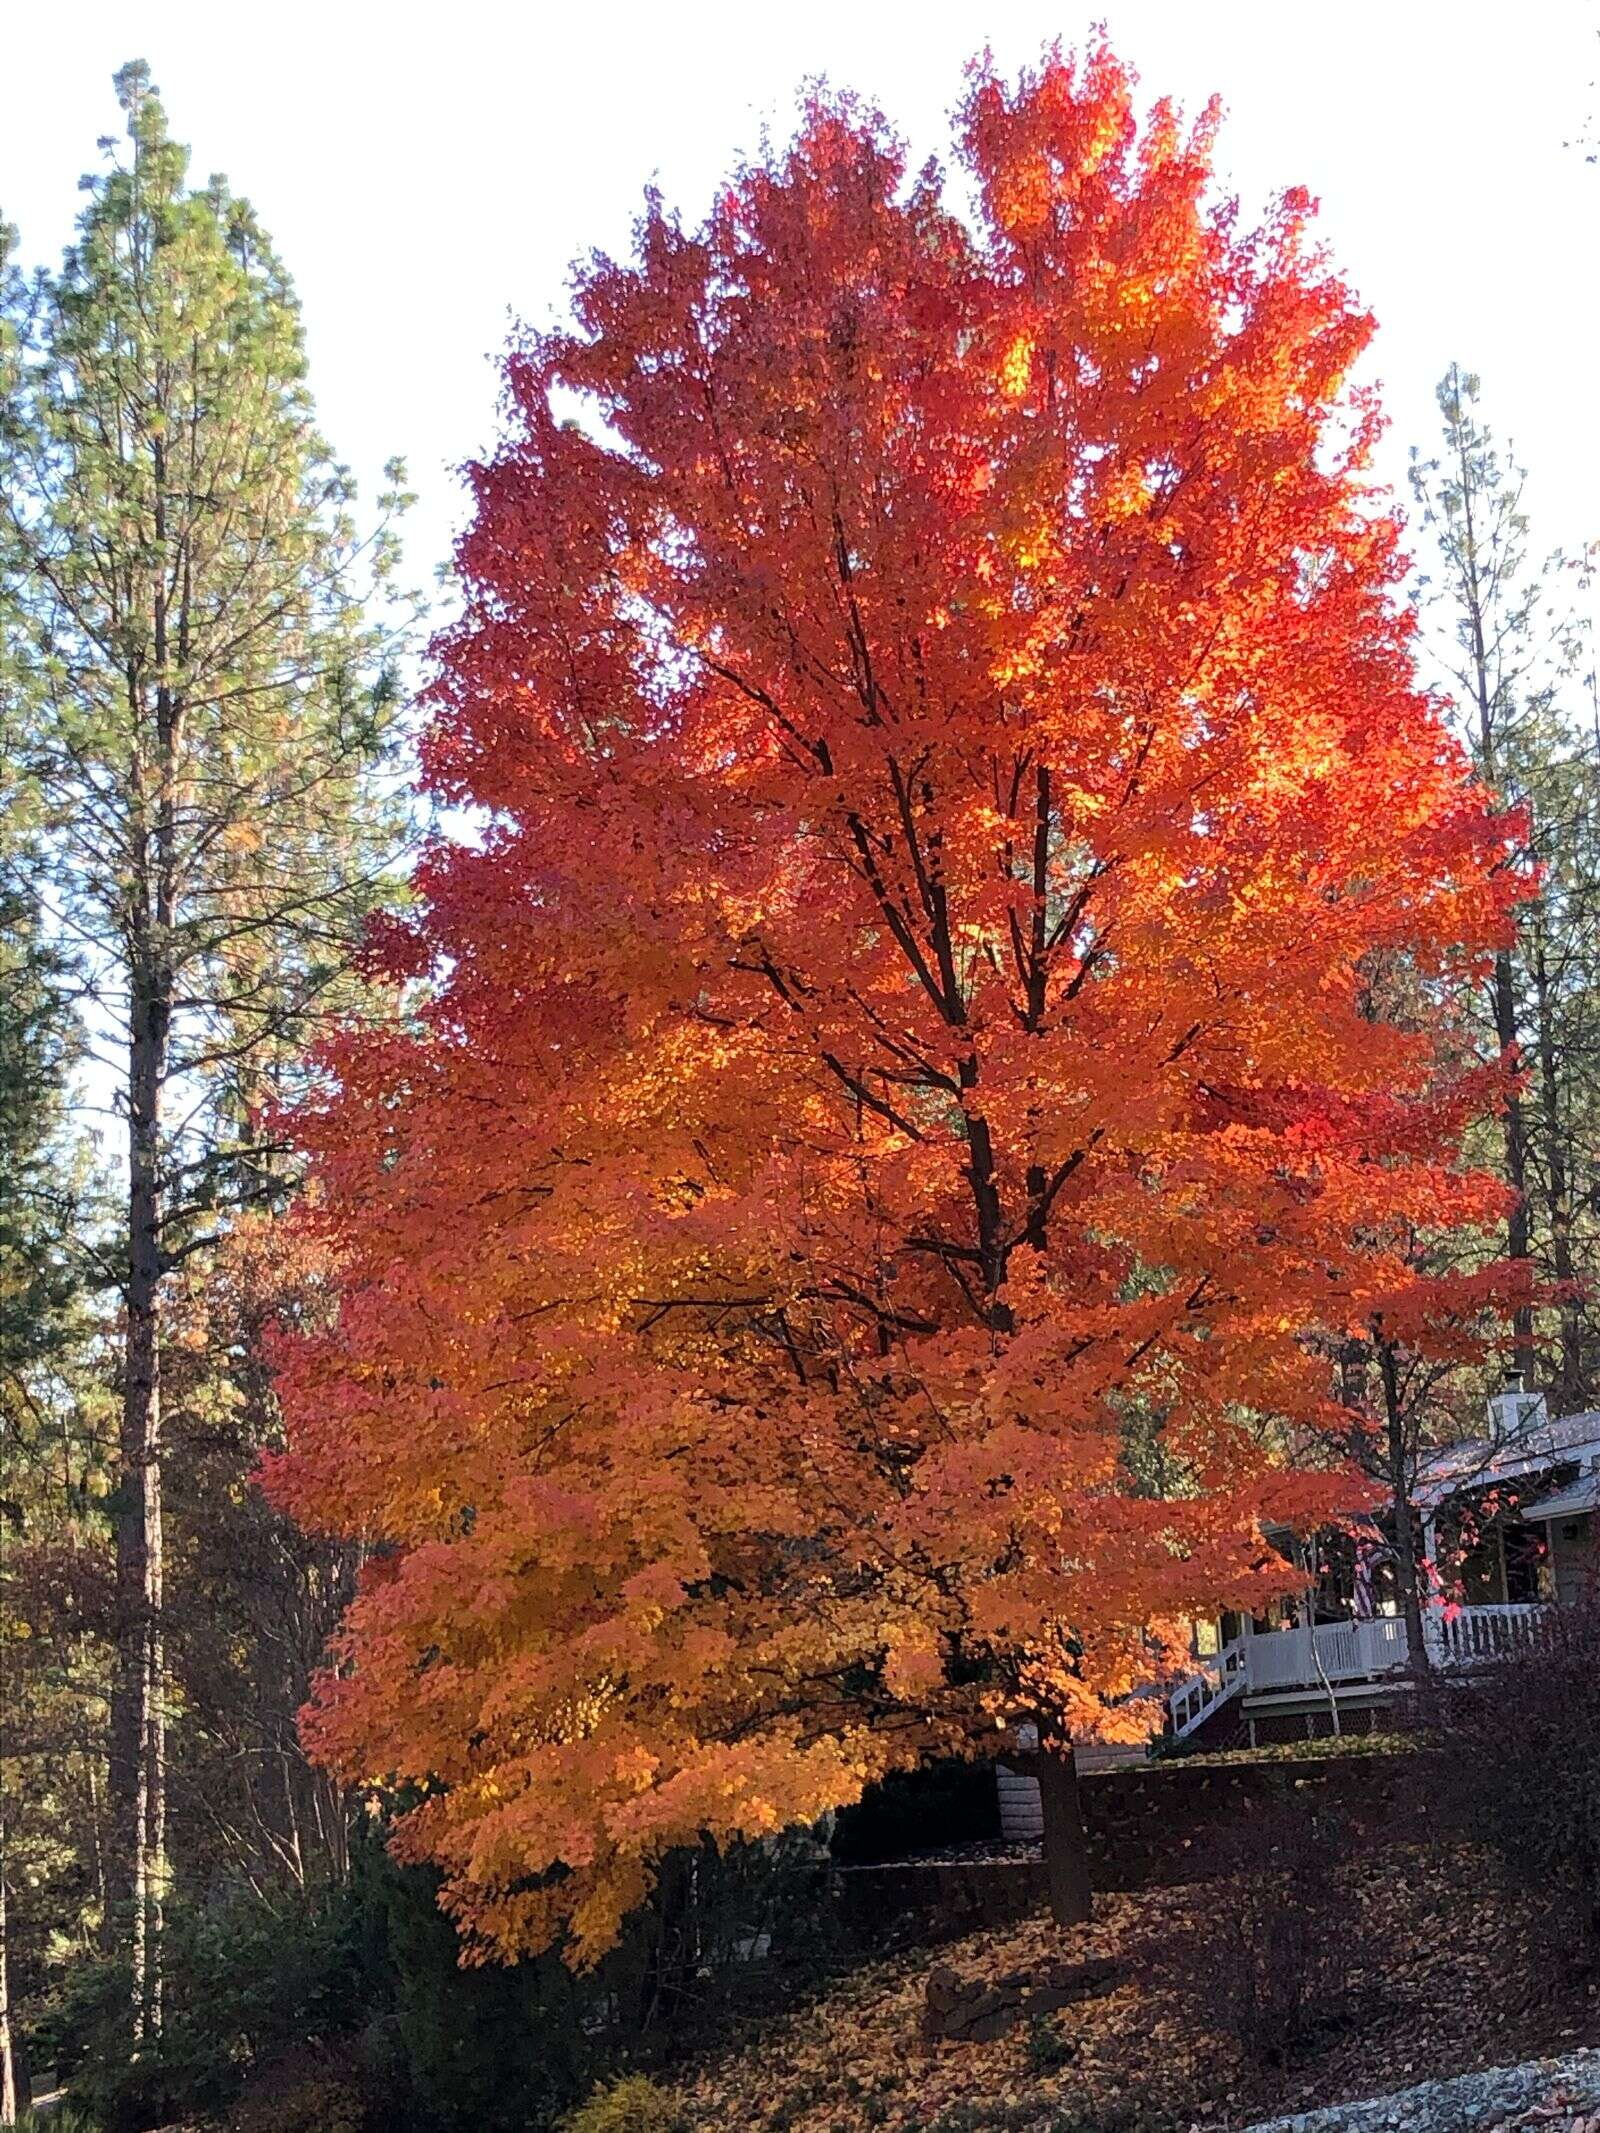 A few beautiful tree. | Submitted by Pam Kinzie